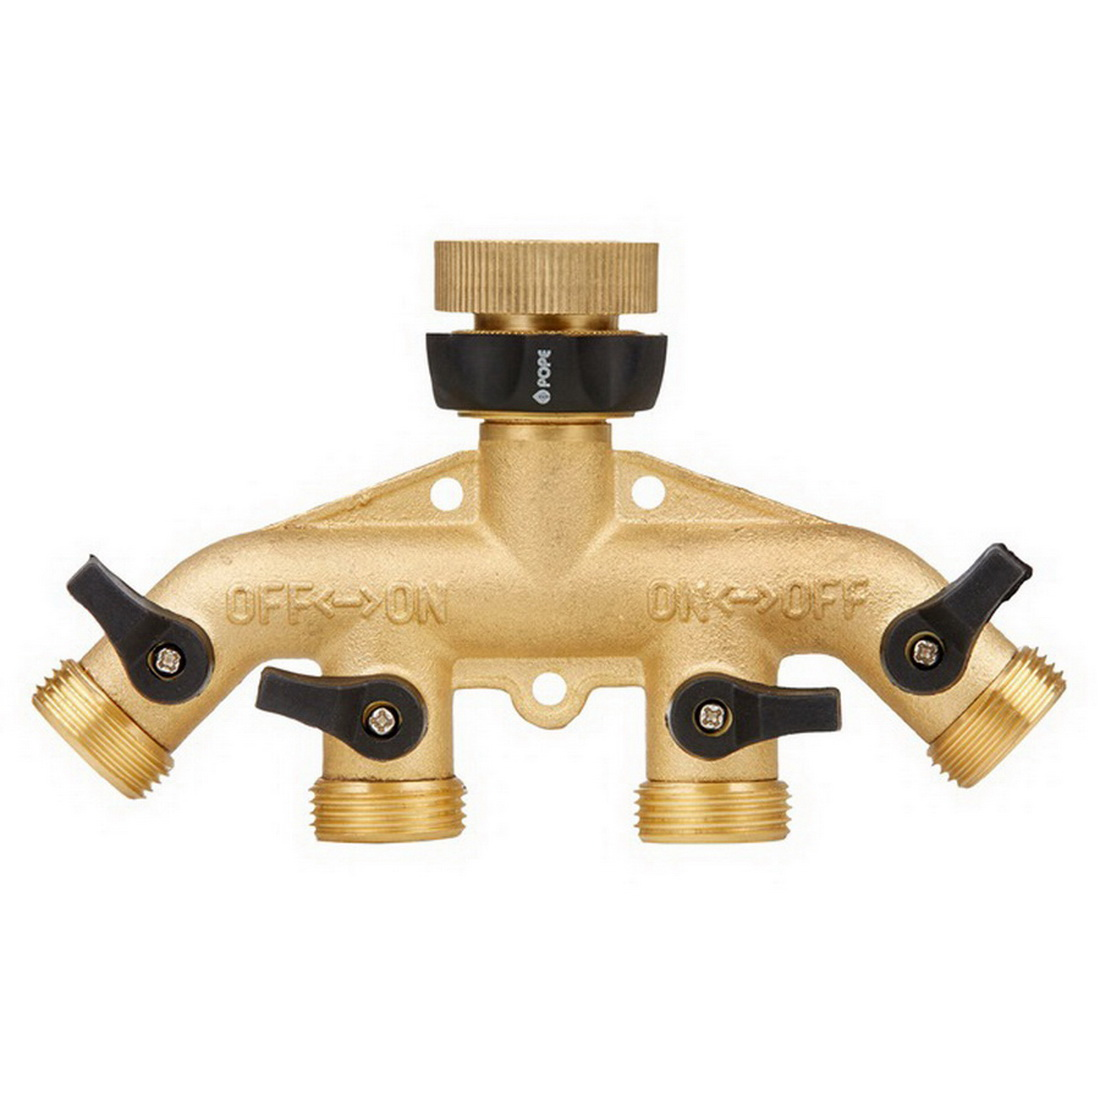 Brass Comfort Grip 4 Way Tap Threaded 12mm Connection